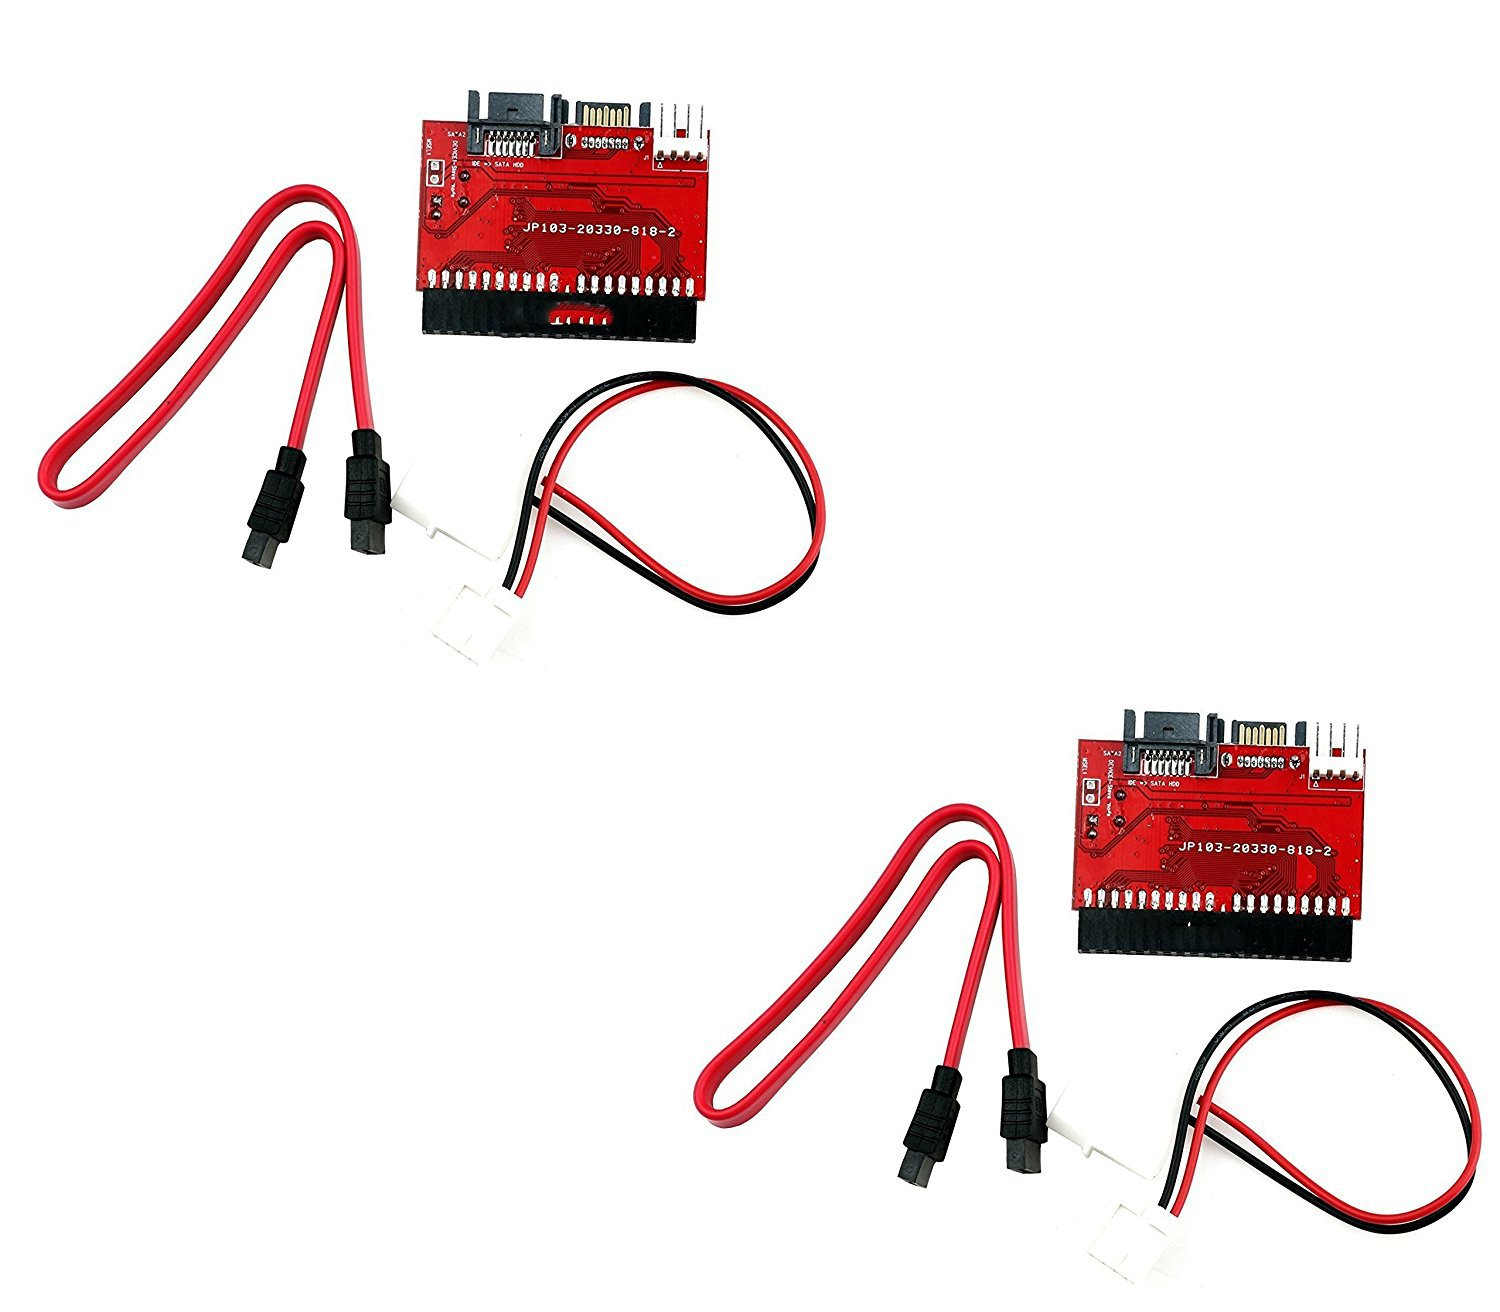 (2 Pack) Bi-Directional IDE / SATA Converter - Connect IDE Drive to SATA Motherboard or SATA Drive to IDE Motherboard